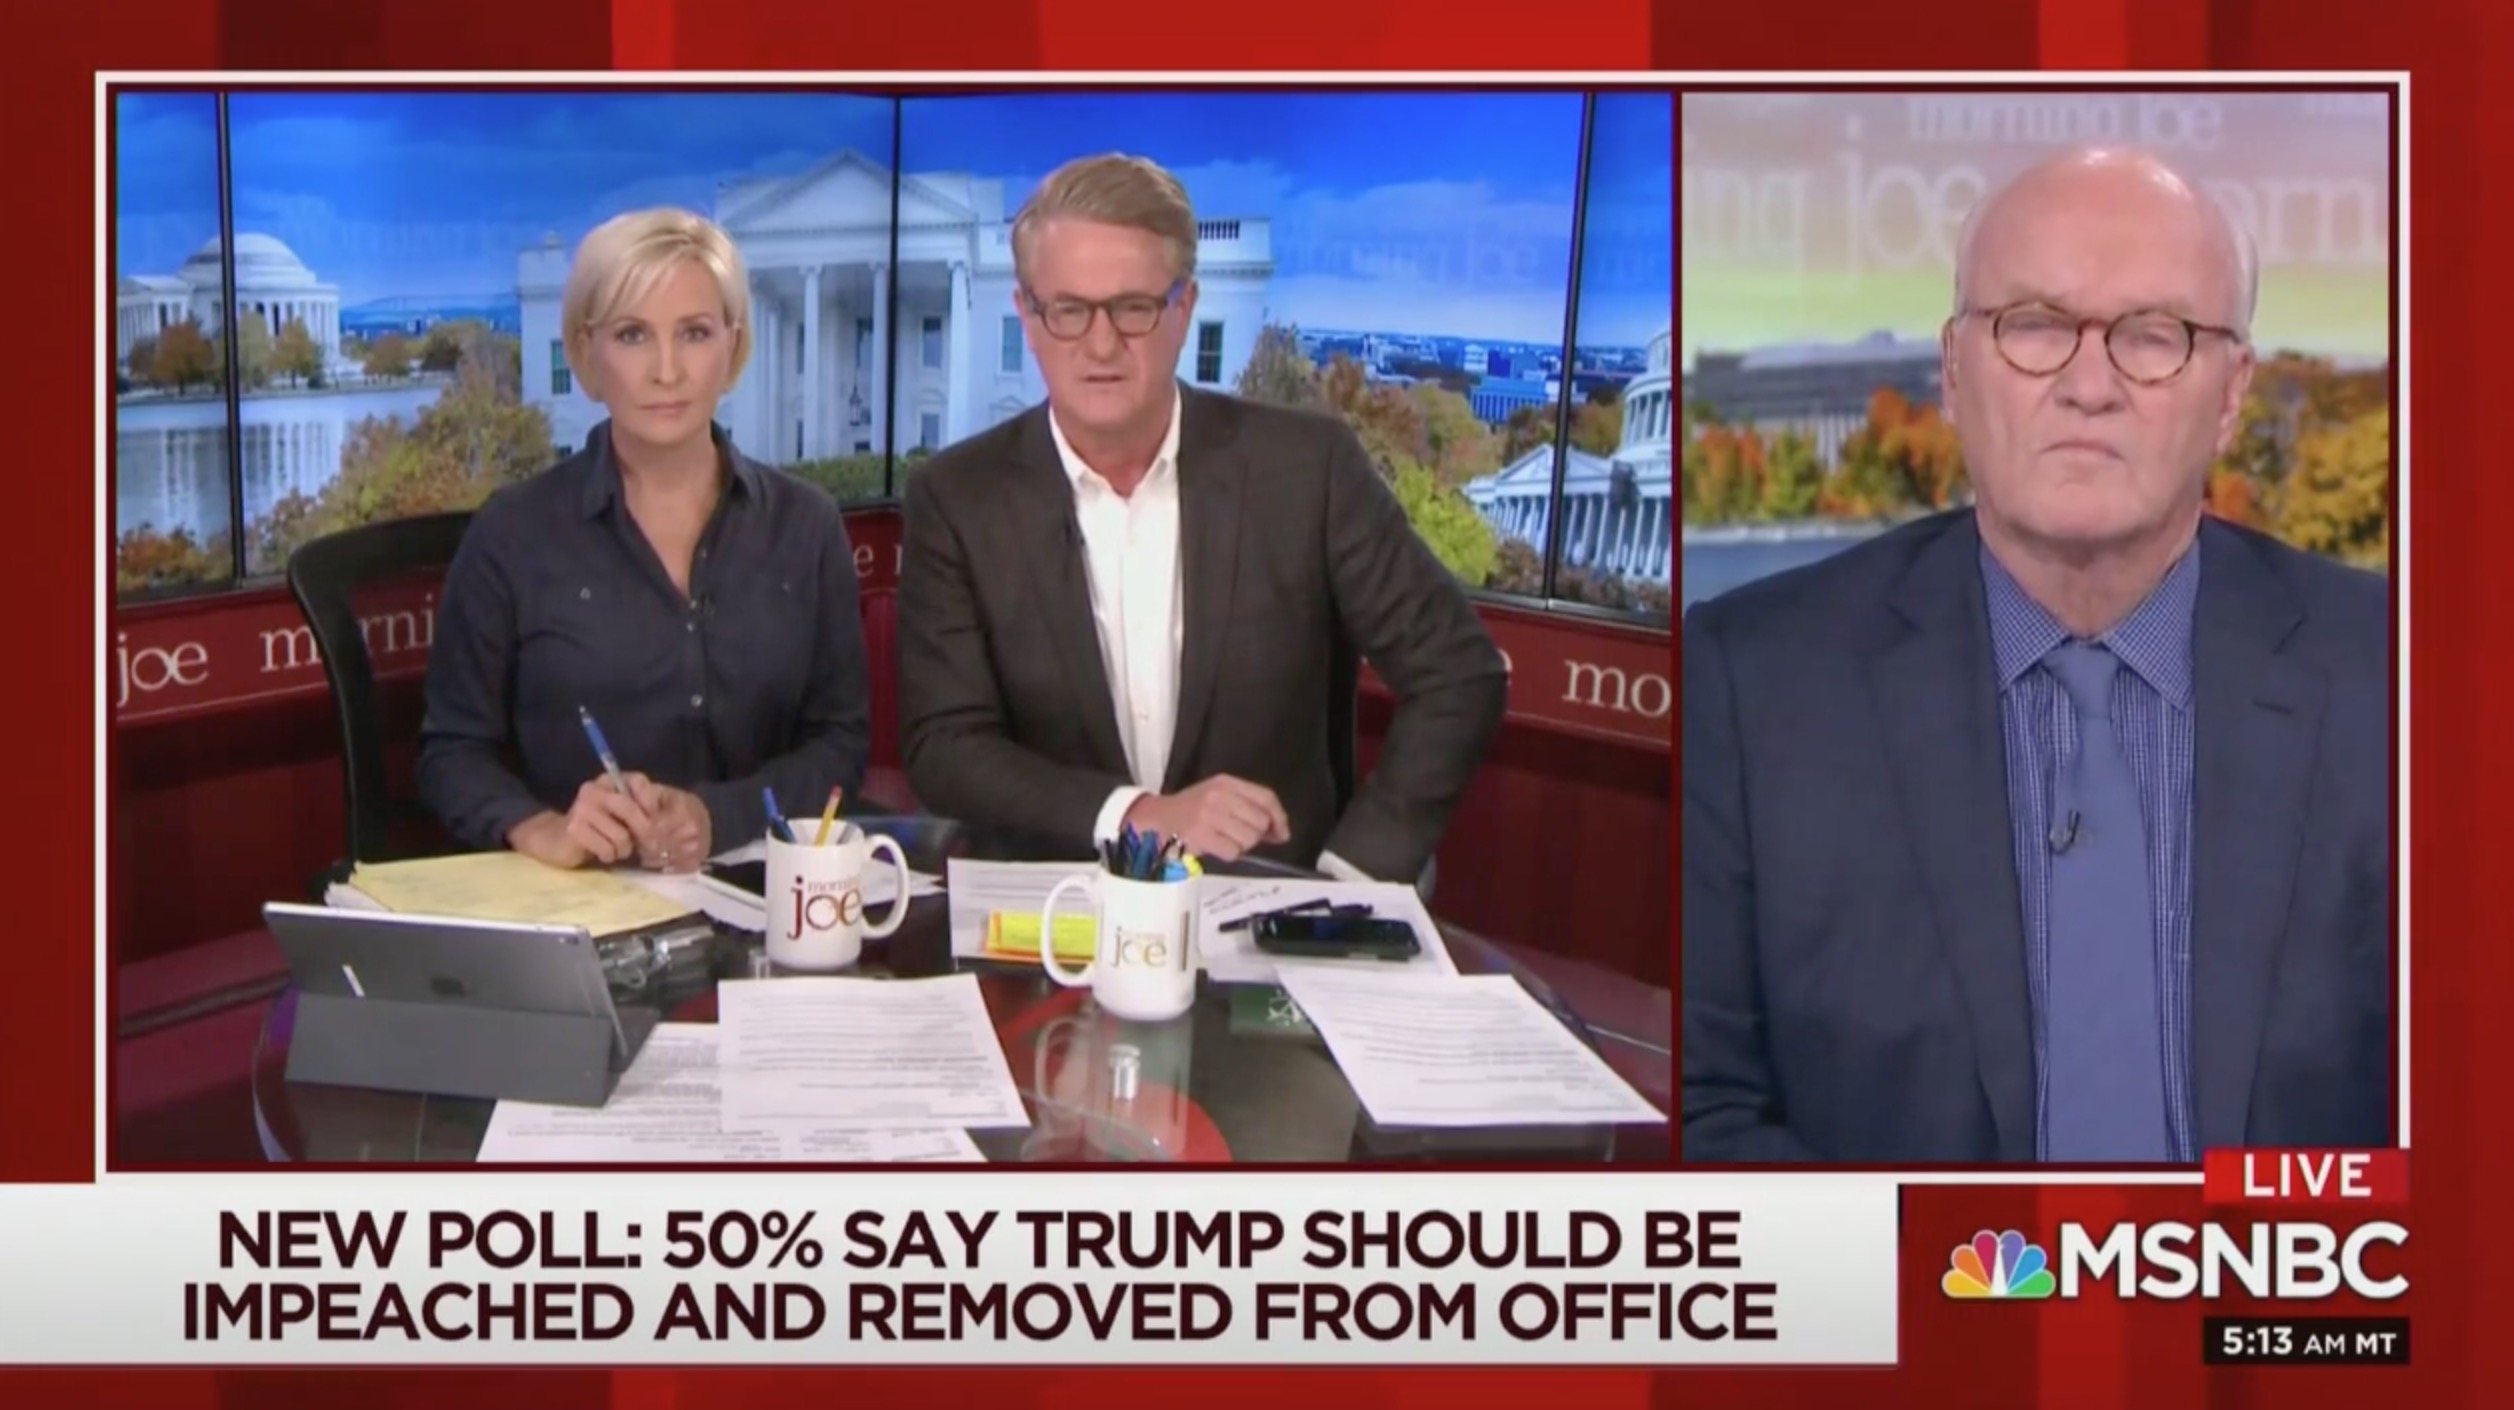 Joe Scarborough Wrecks Trump for Letting Russia Benefit From Syria Crisis: 'Pelosi Was Right, All Roads Lead to Putin'